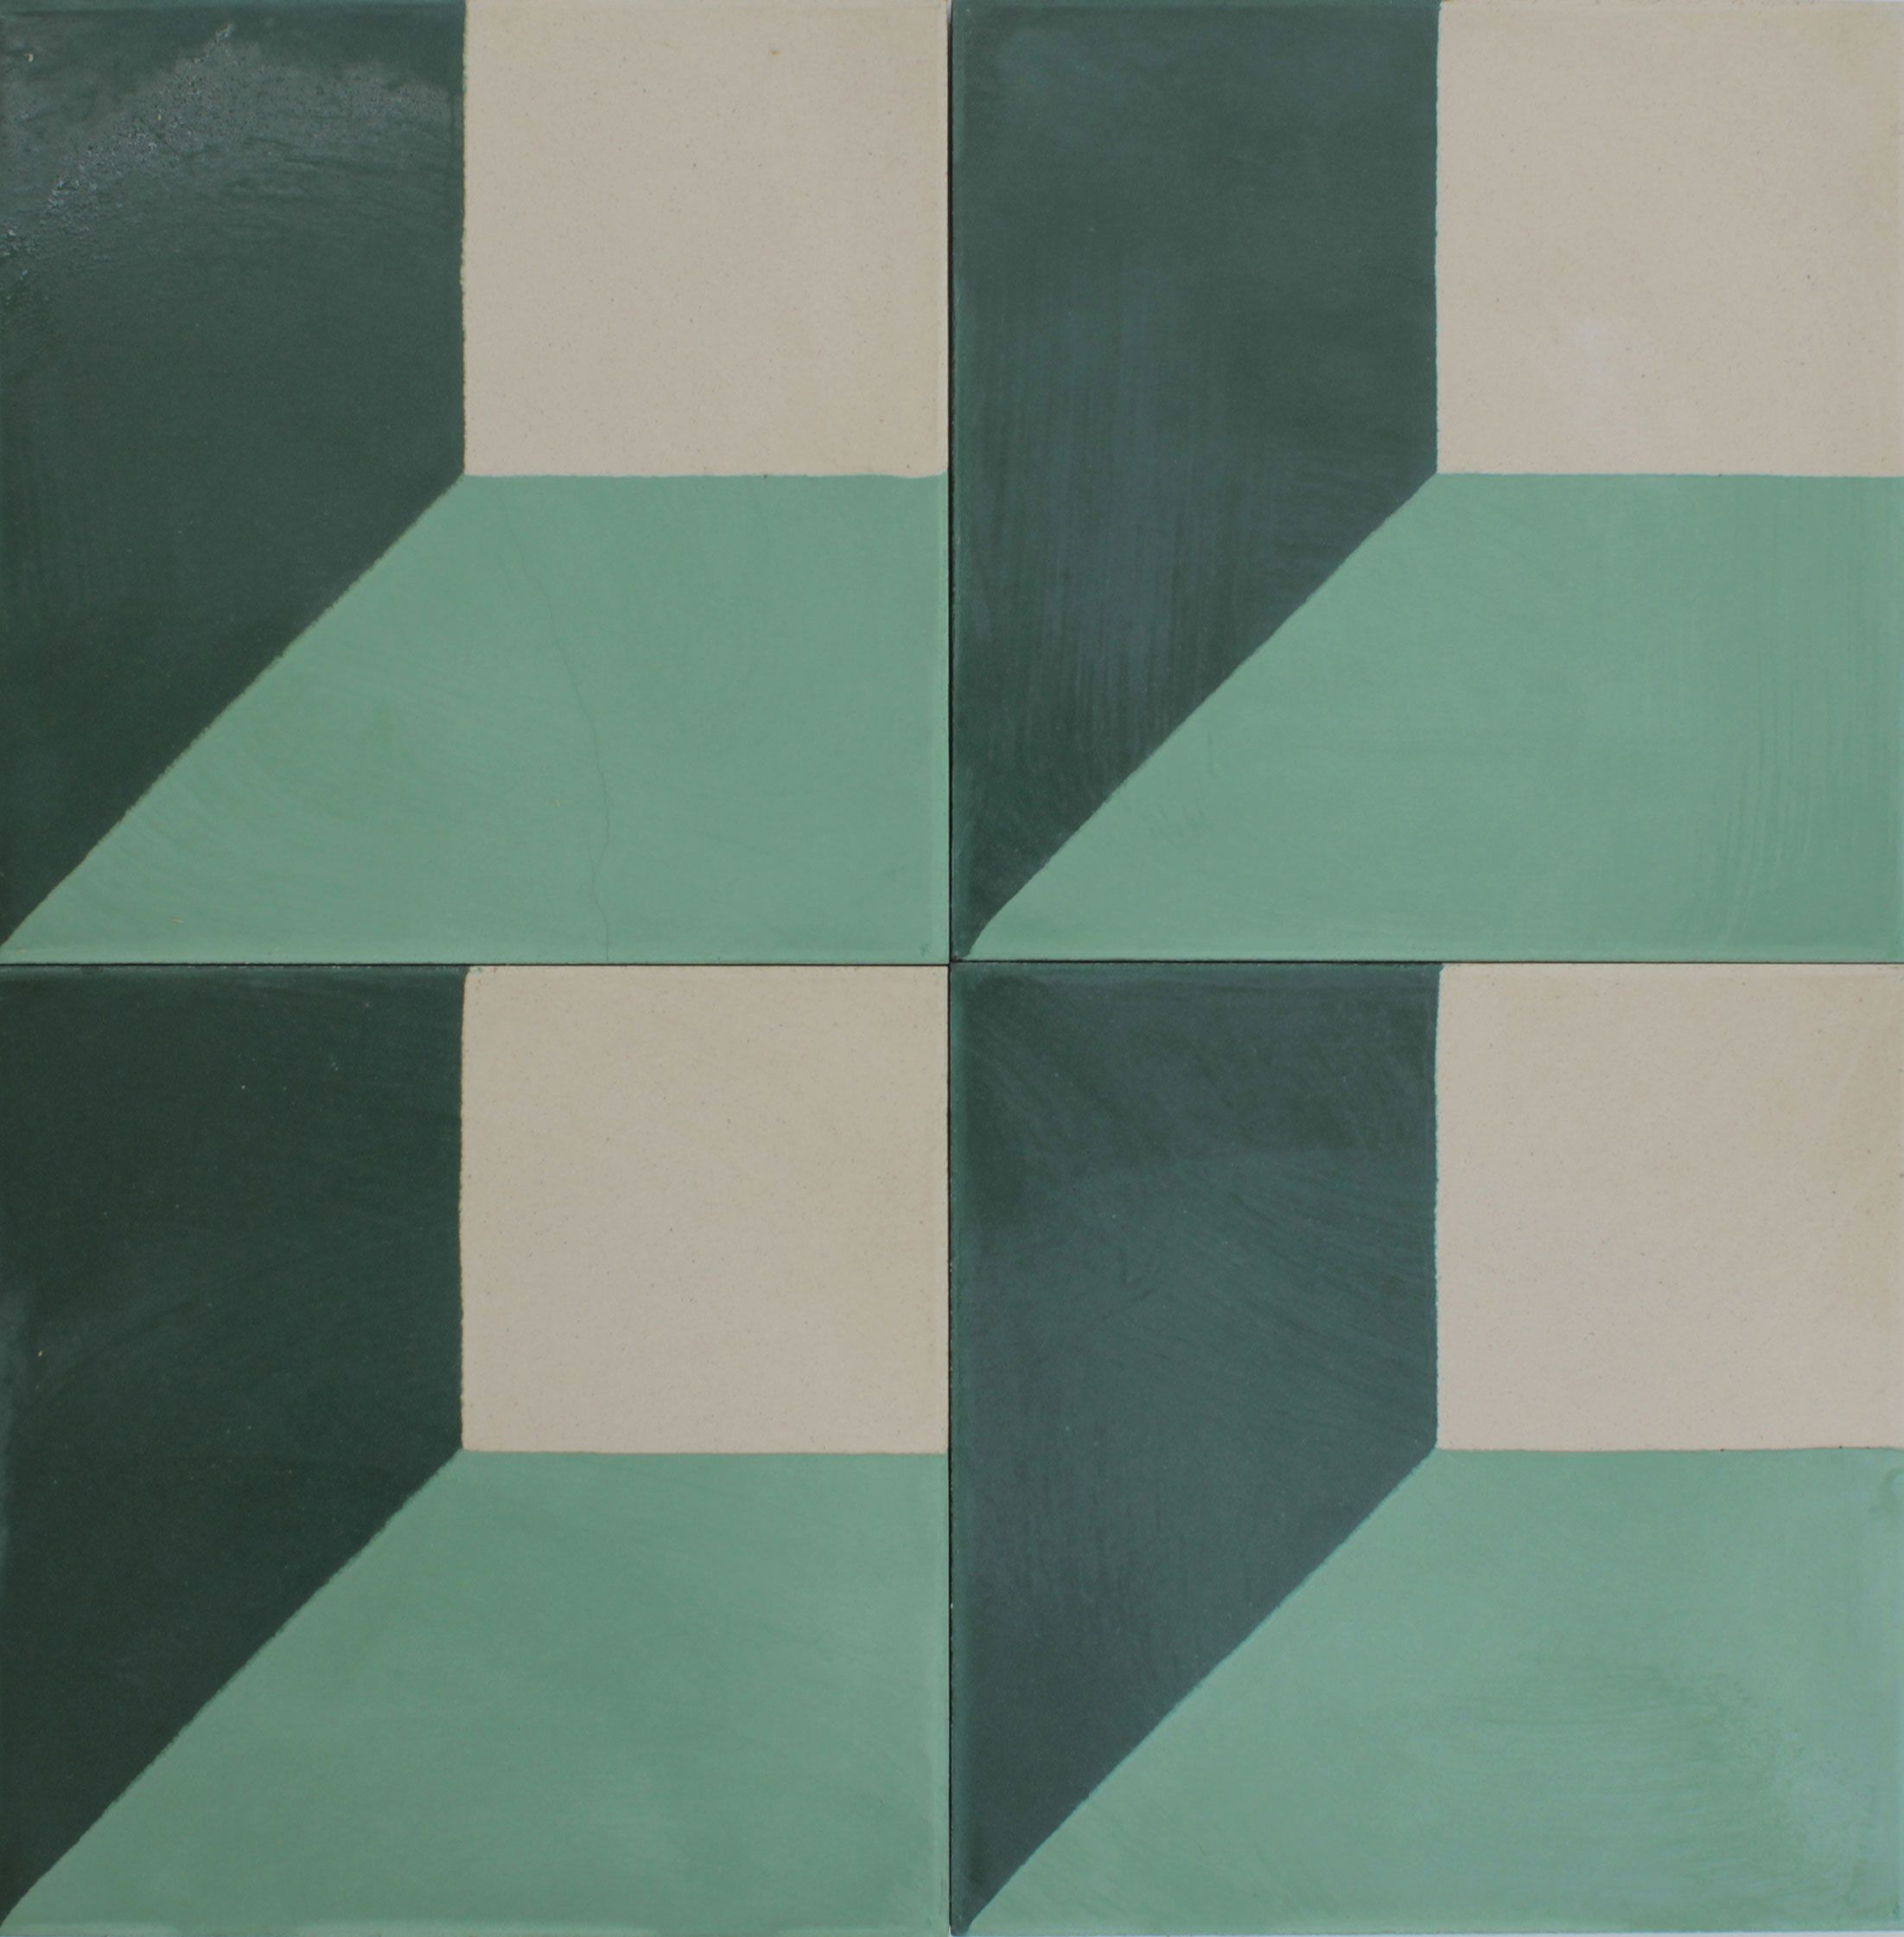 Concrete Floor Tiles In A Groovy Graphic Pattern Tile